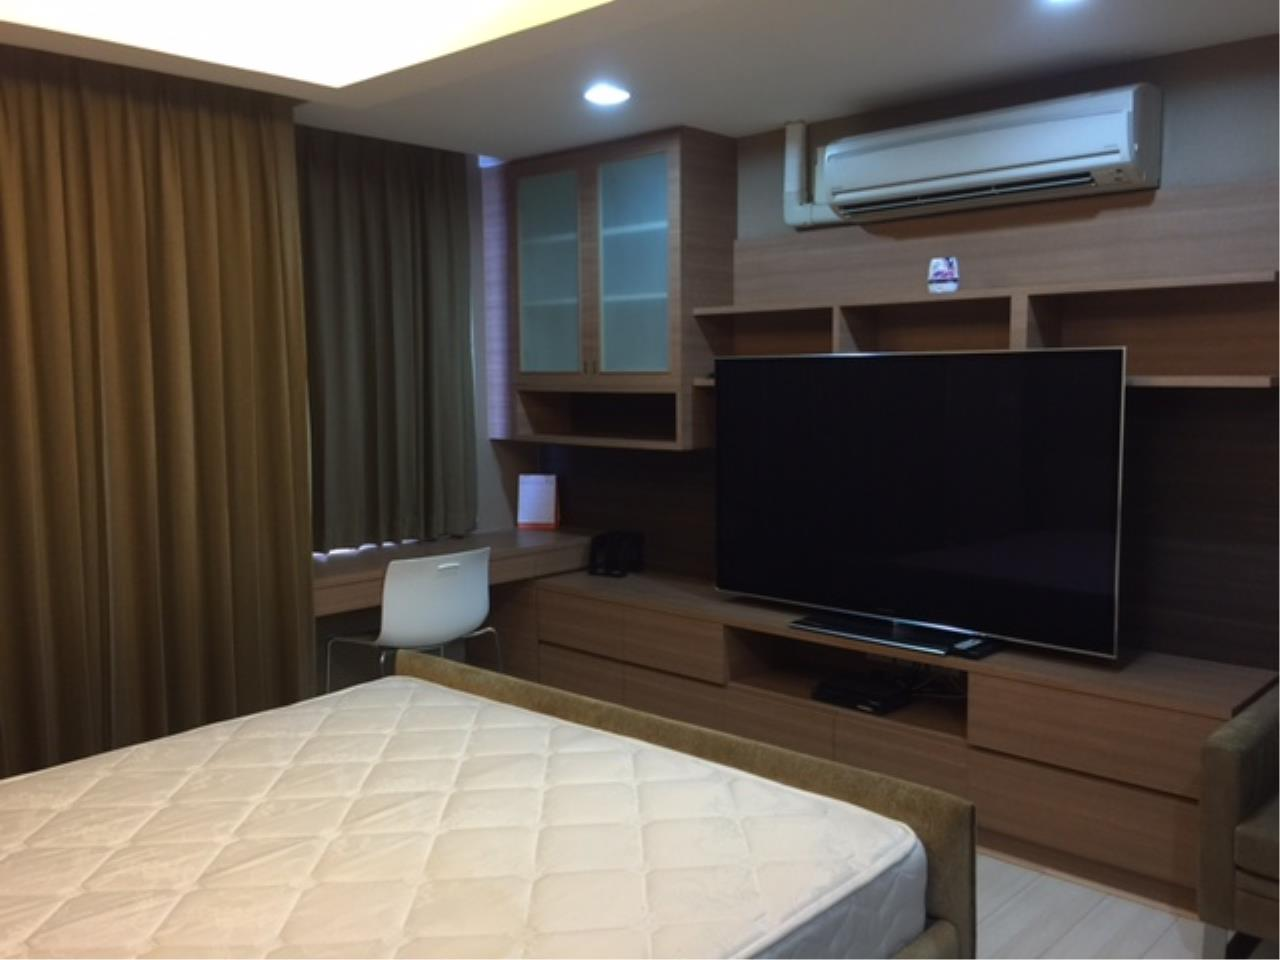 Piri Property Agency's 2 bedrooms Condominium  on 8 (Phase1) floor For Rent 2 10